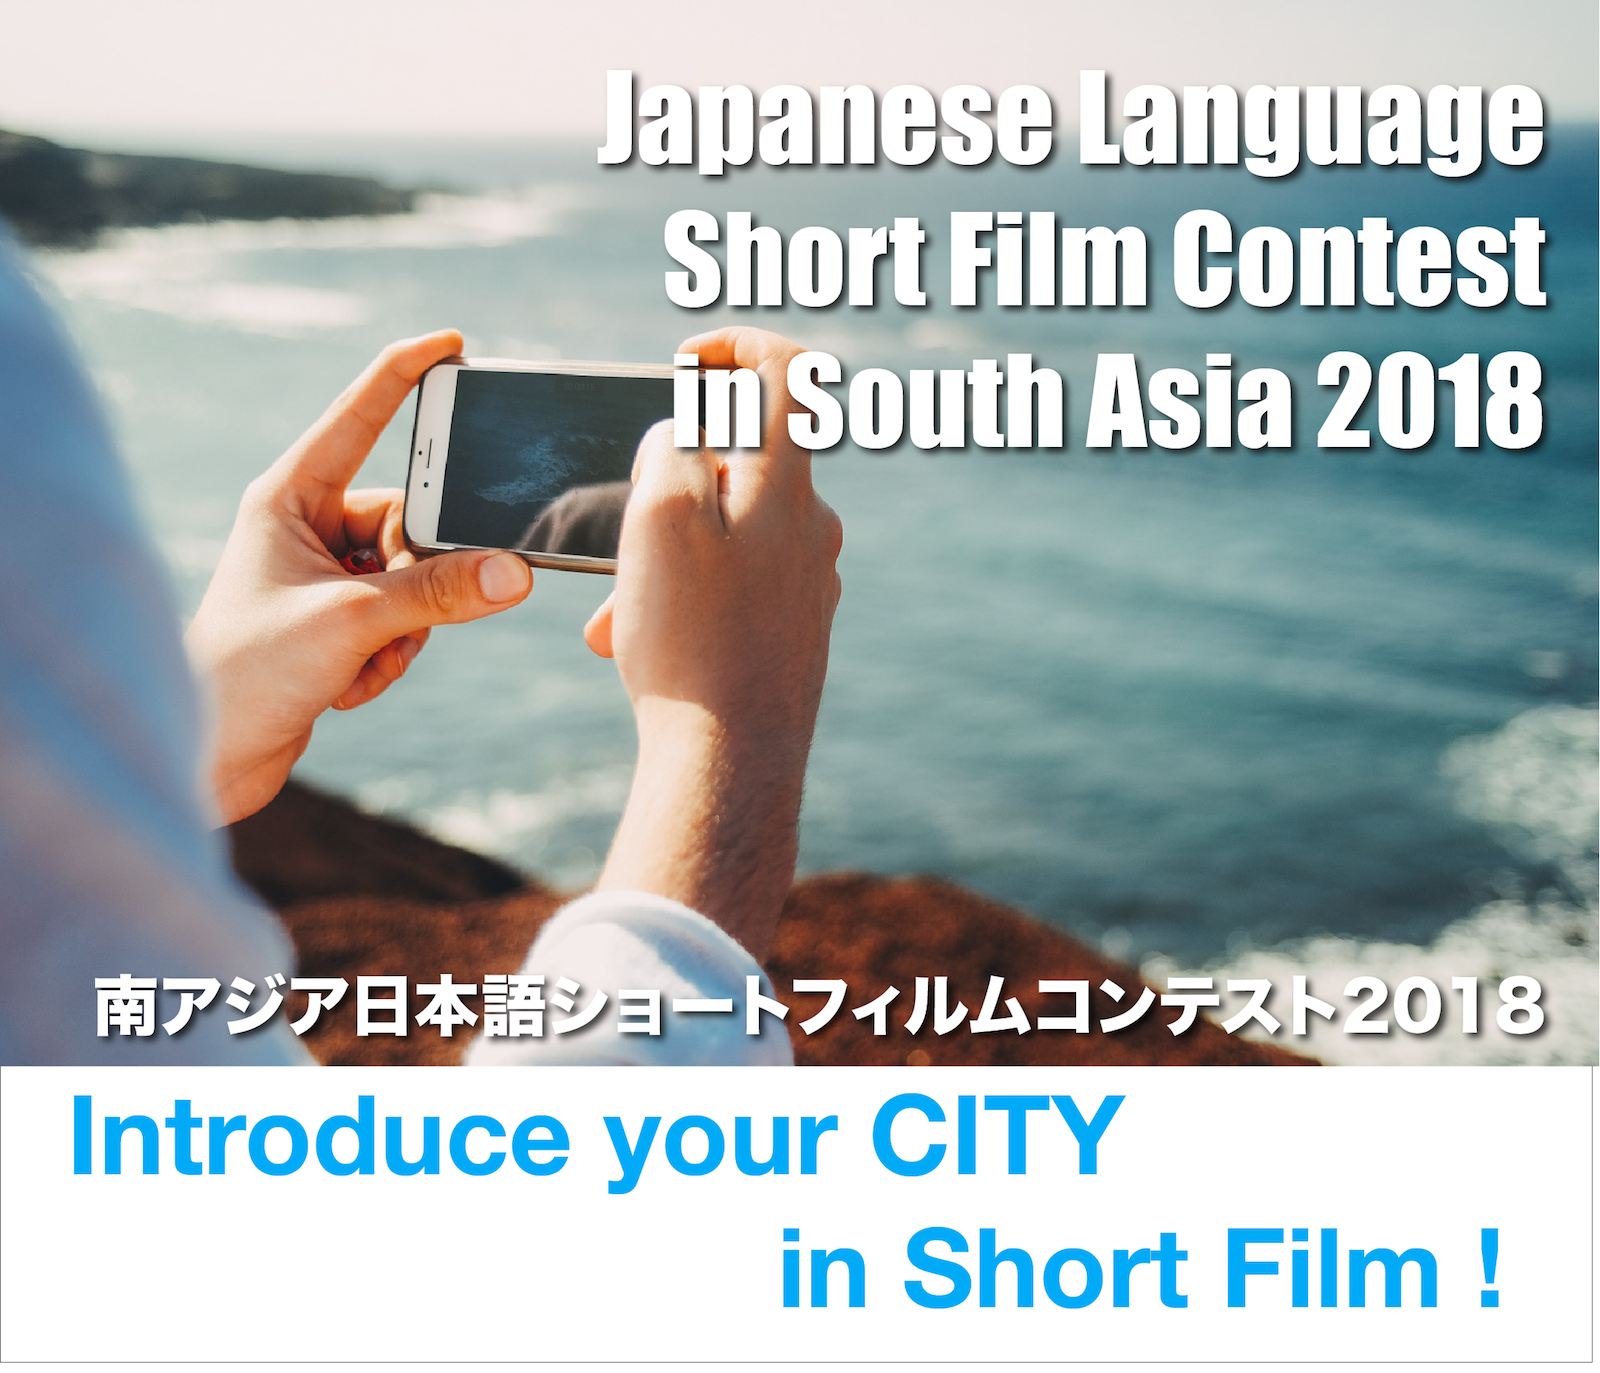 Japanese Language Short Film Contest in South Asia 2018